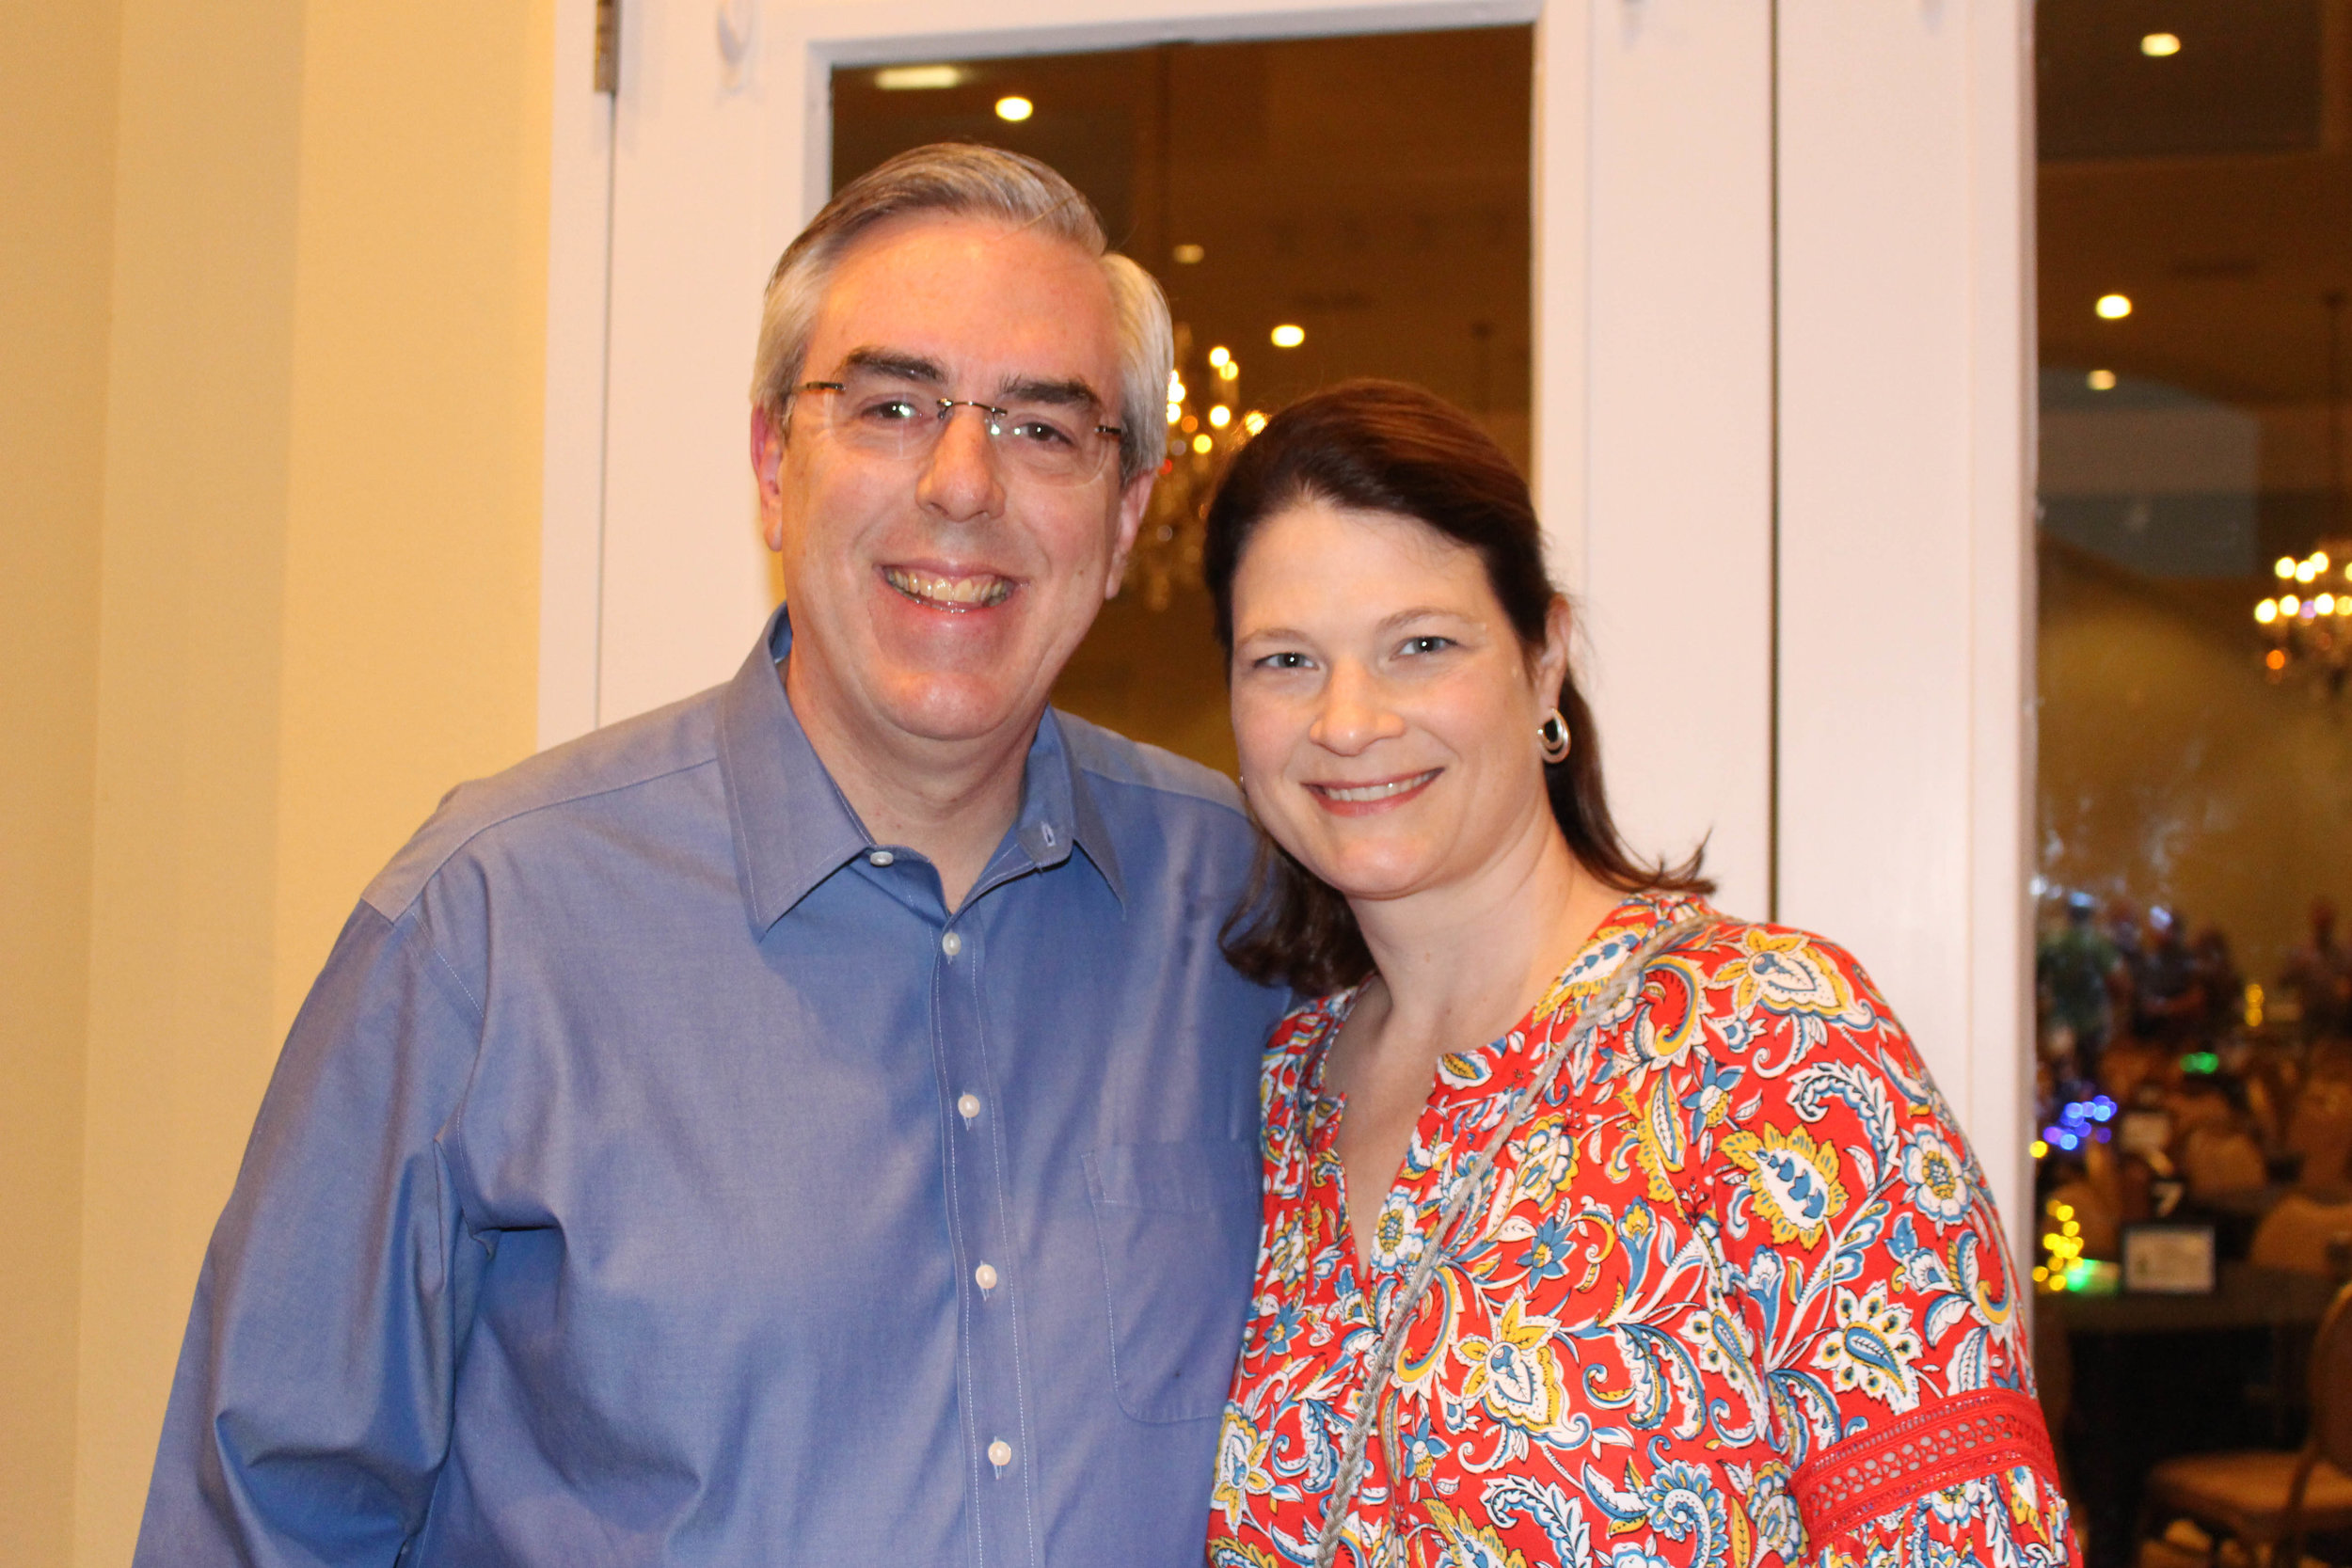 Dr. Brad and Laura Morgan